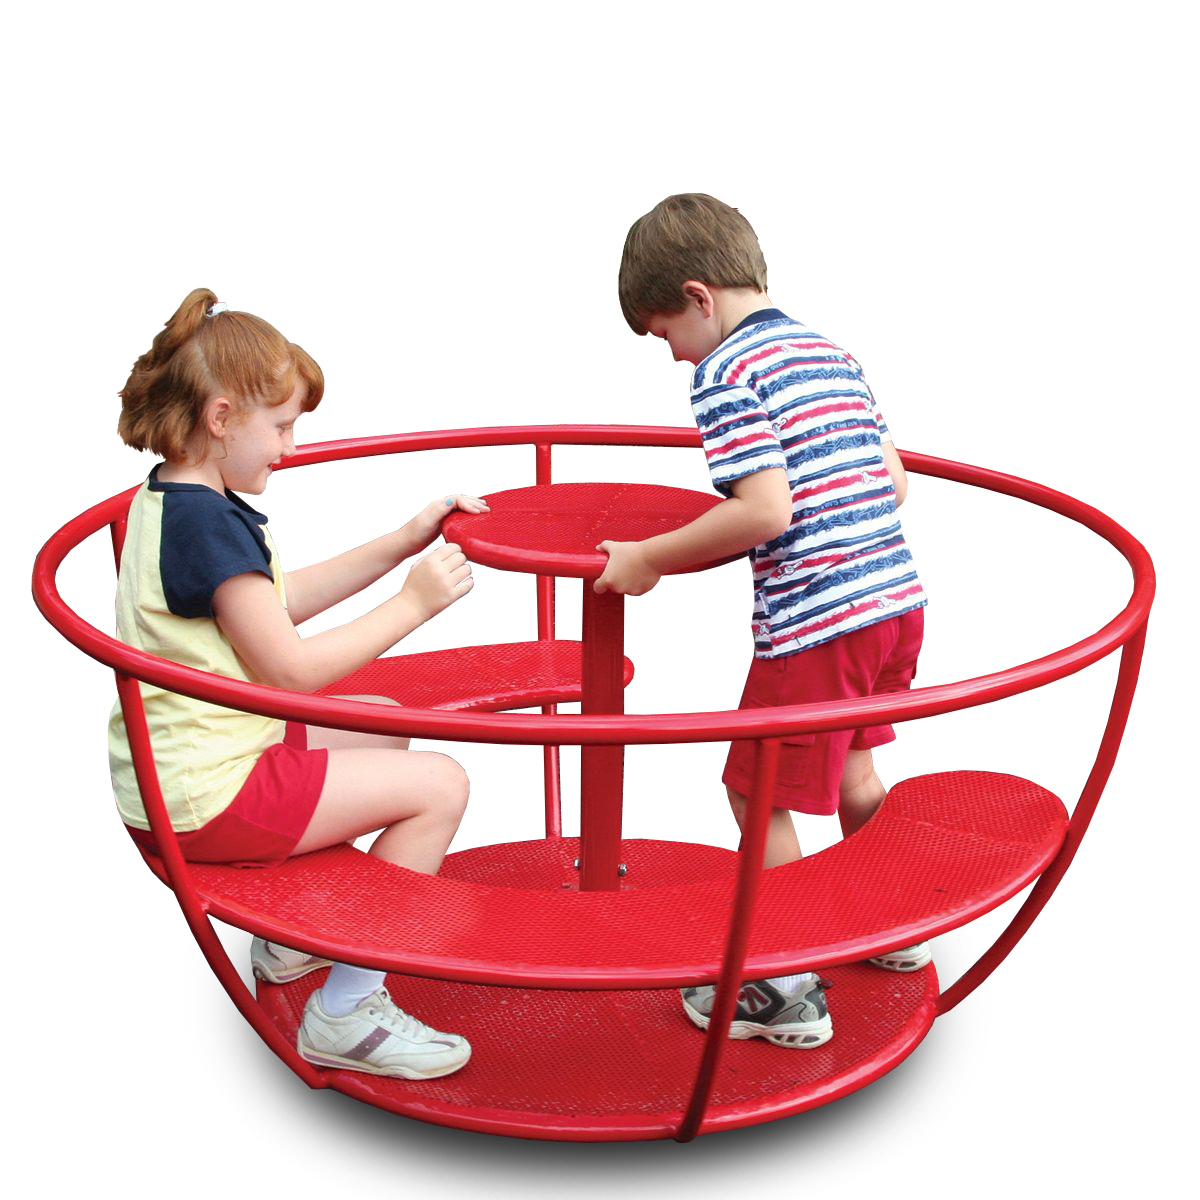 Tea Cup Merry Go Round by SportsPlay - AAA State of Play